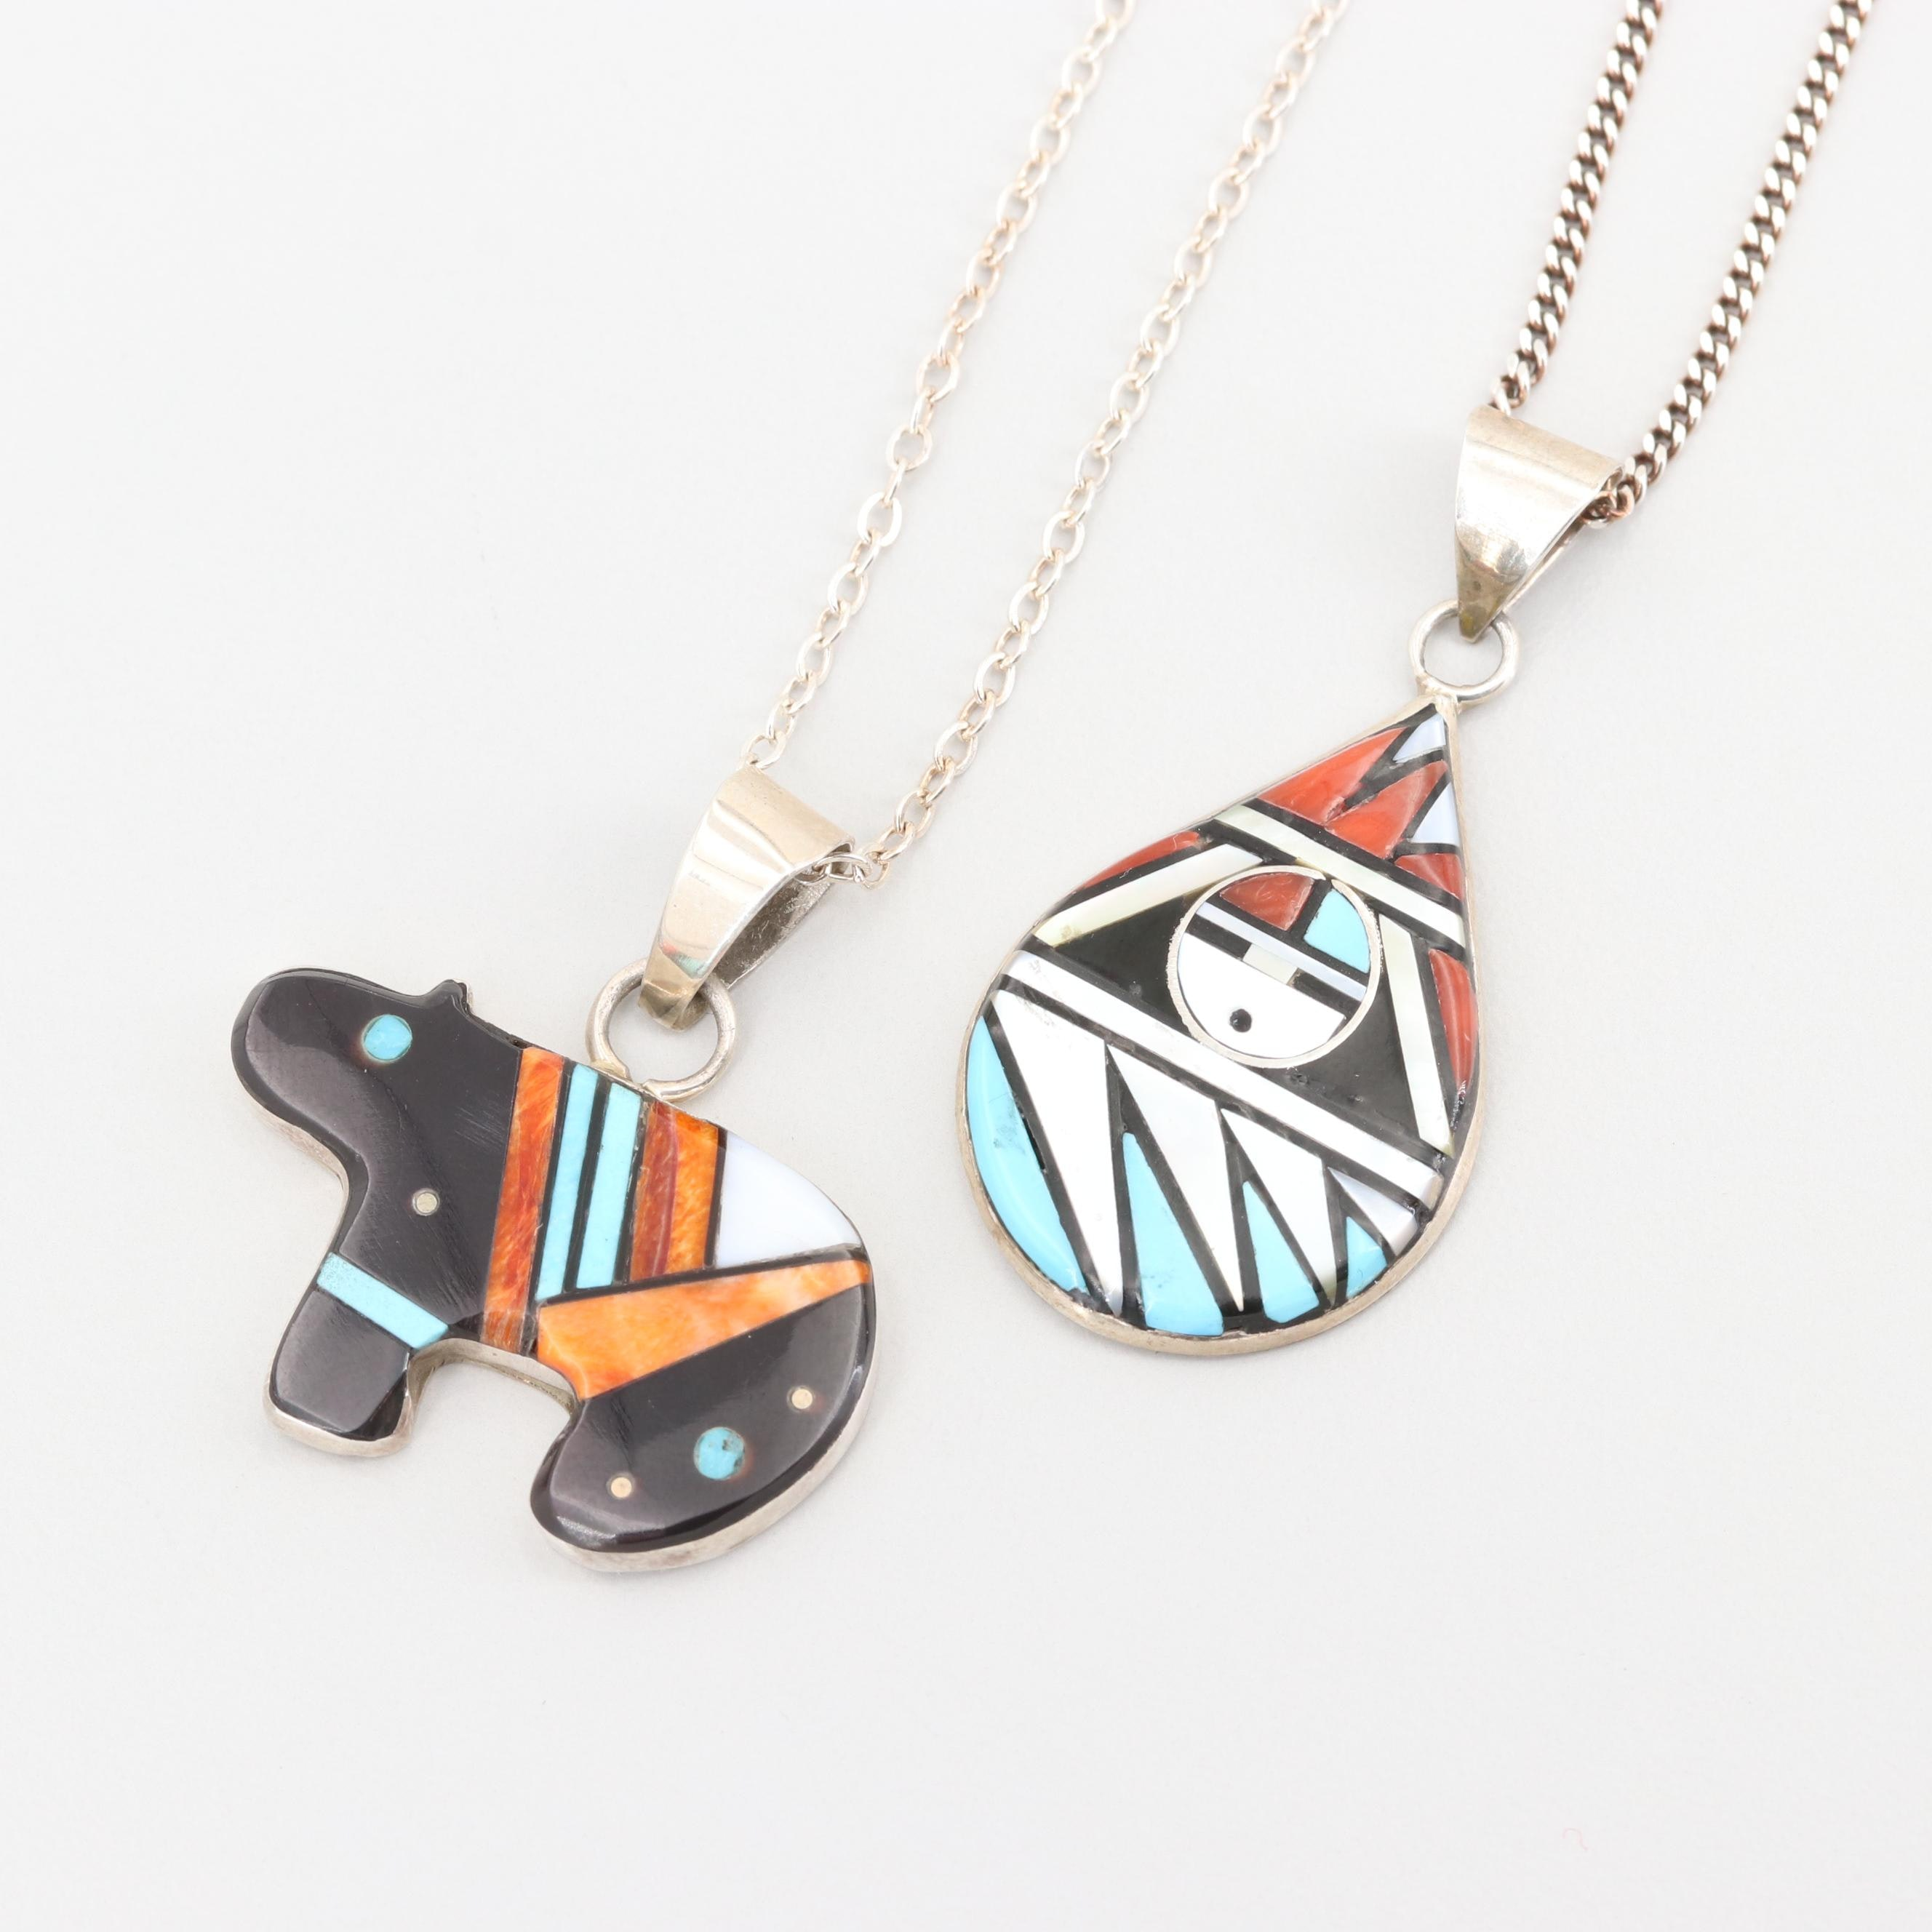 Southwestern Sterling Spiny Oyster, Turquoise and Mother of Pearl Necklaces